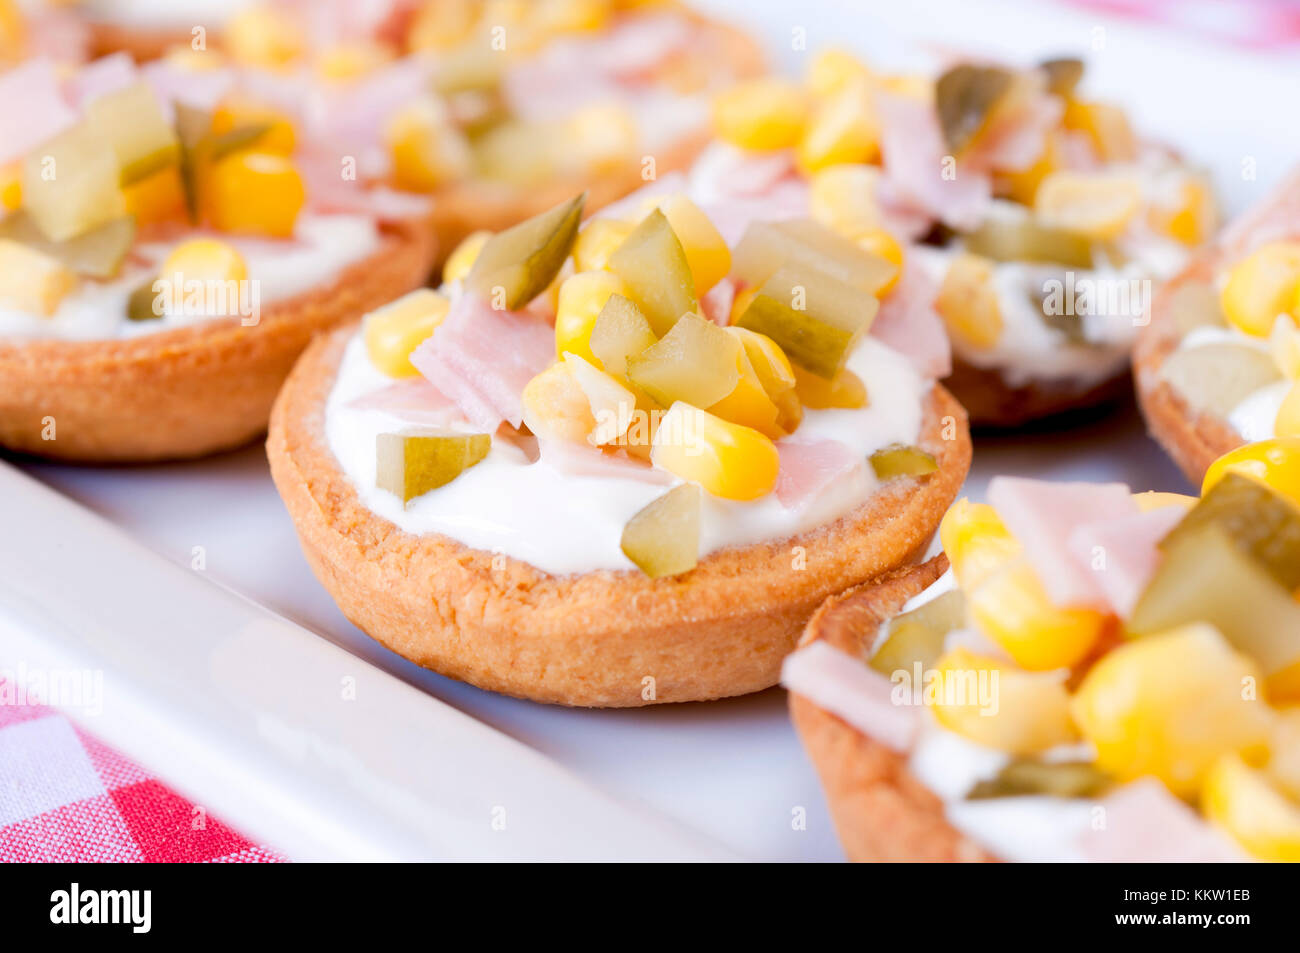 Selective focus on small appetizer in the middle - Stock Image